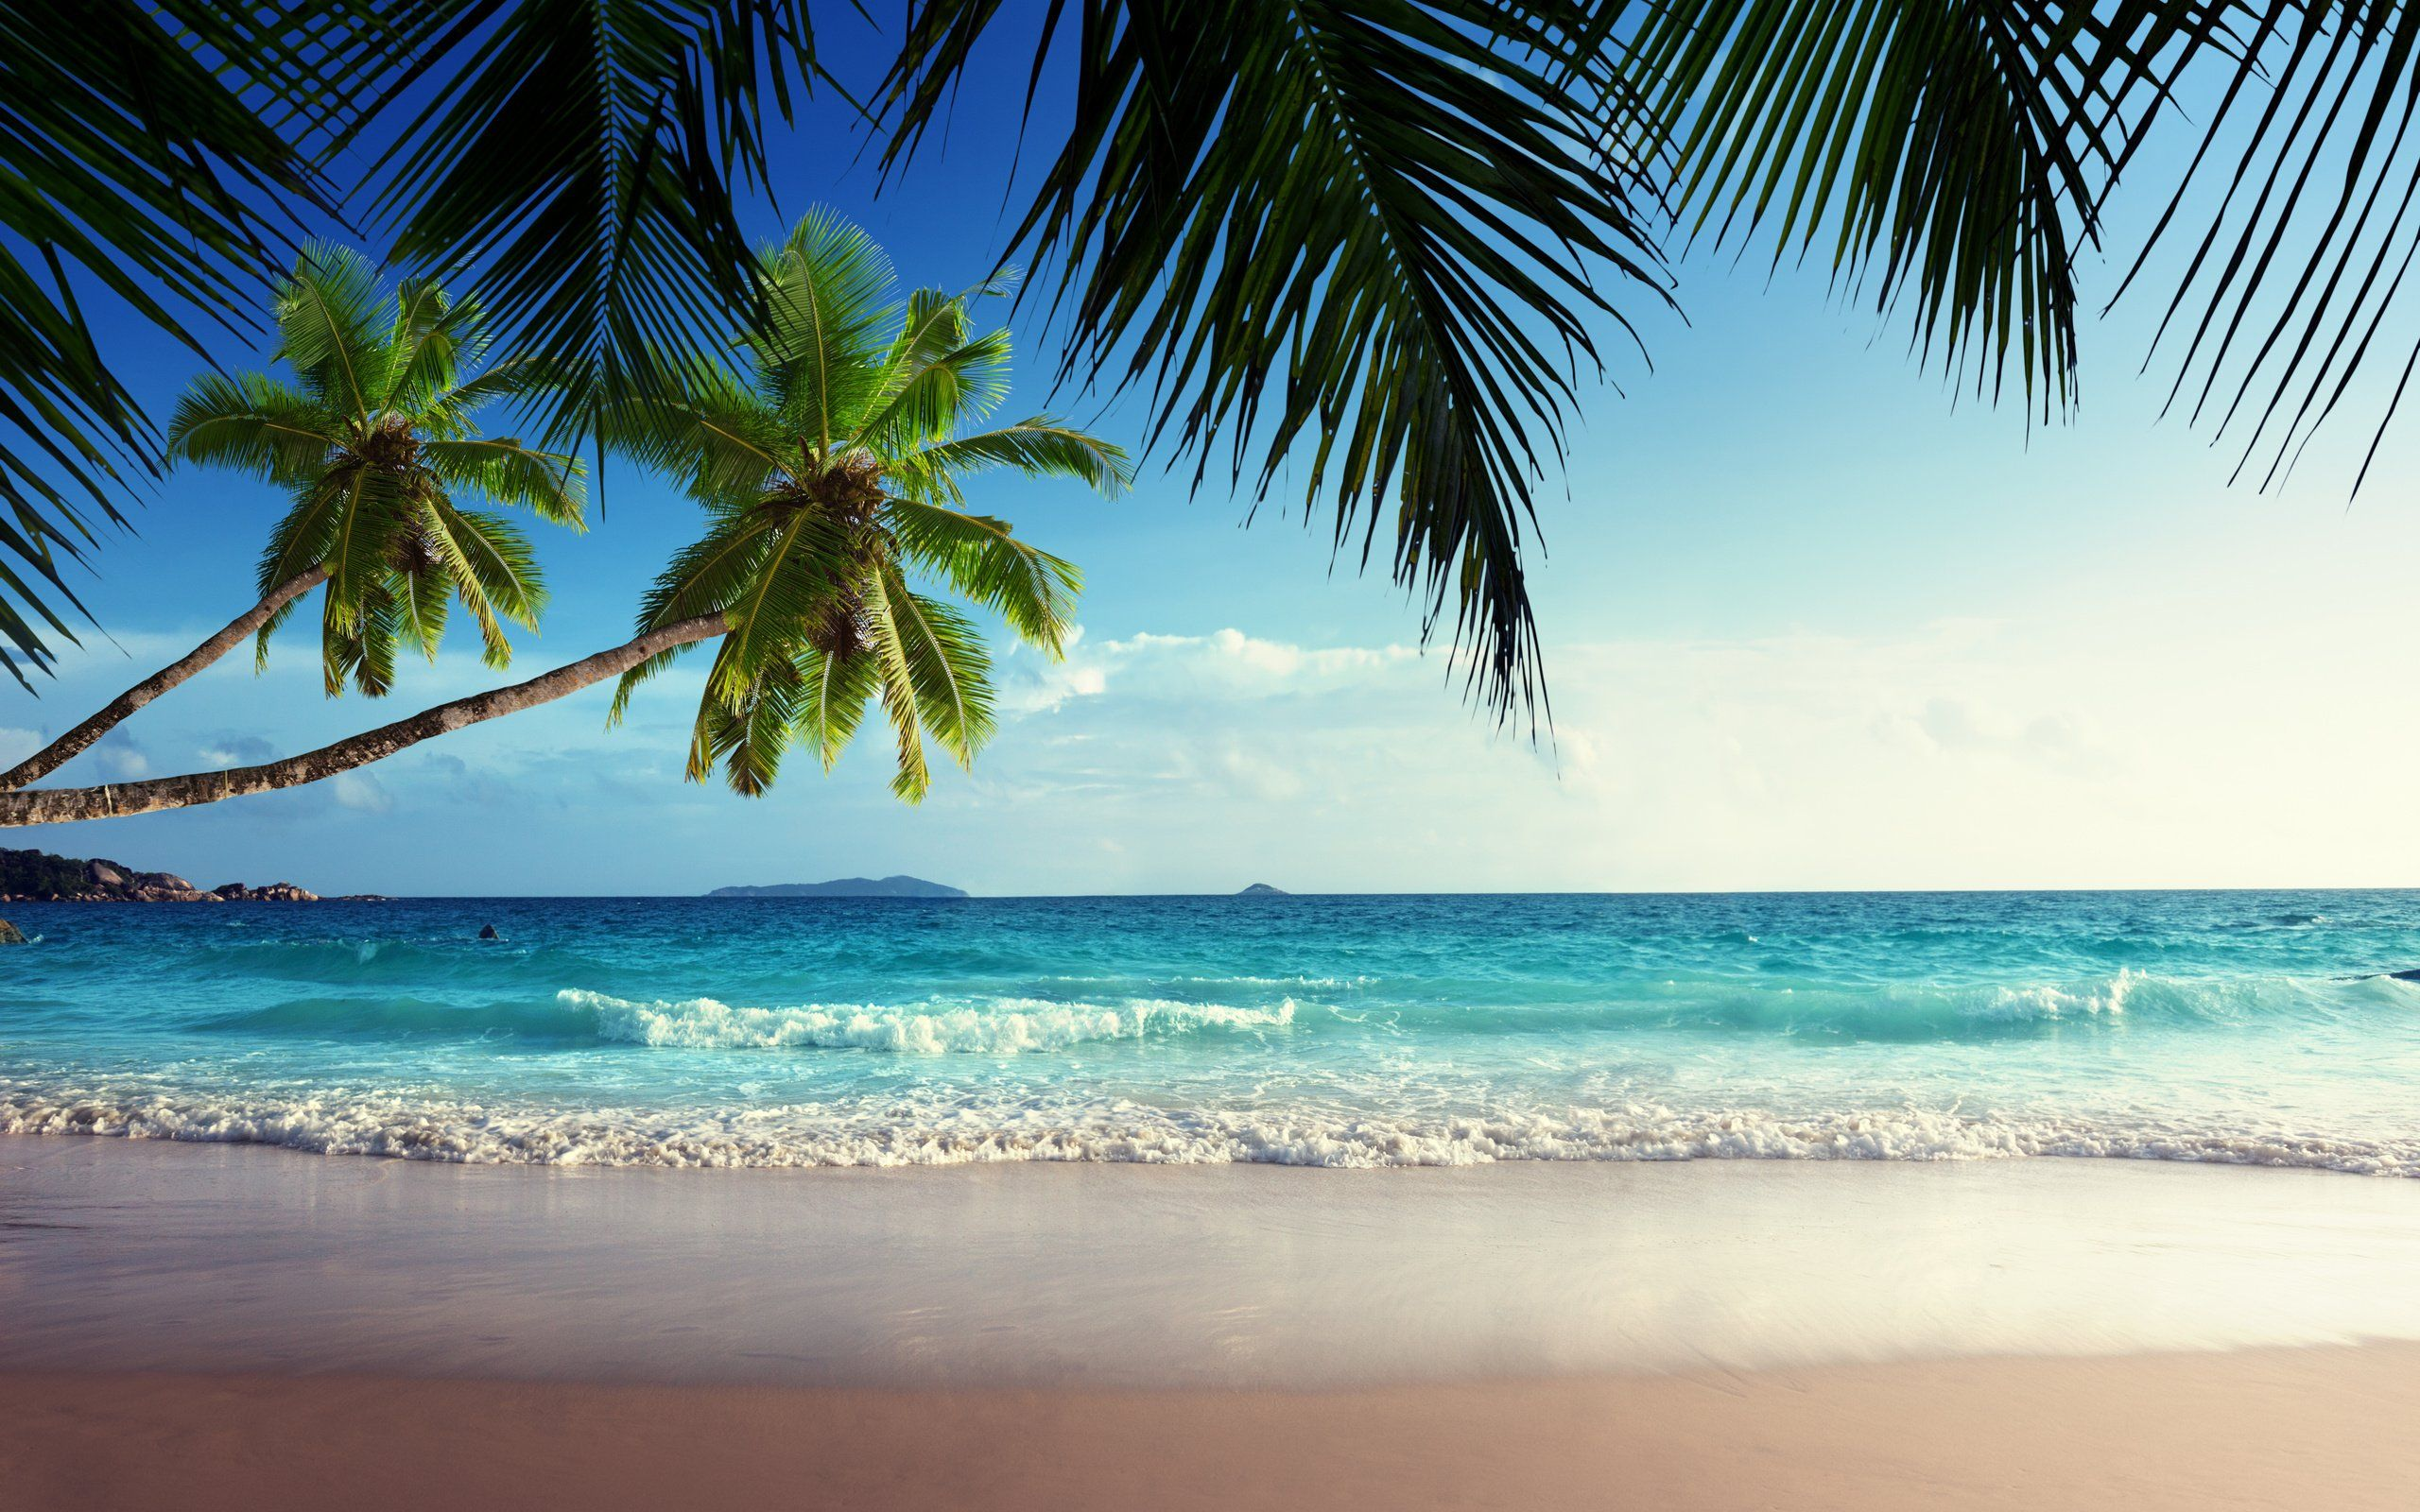 Tropical Beach Paradise Backgrounds: Tropical-beach-paradise-wallpaper-amaimagescom-tropical